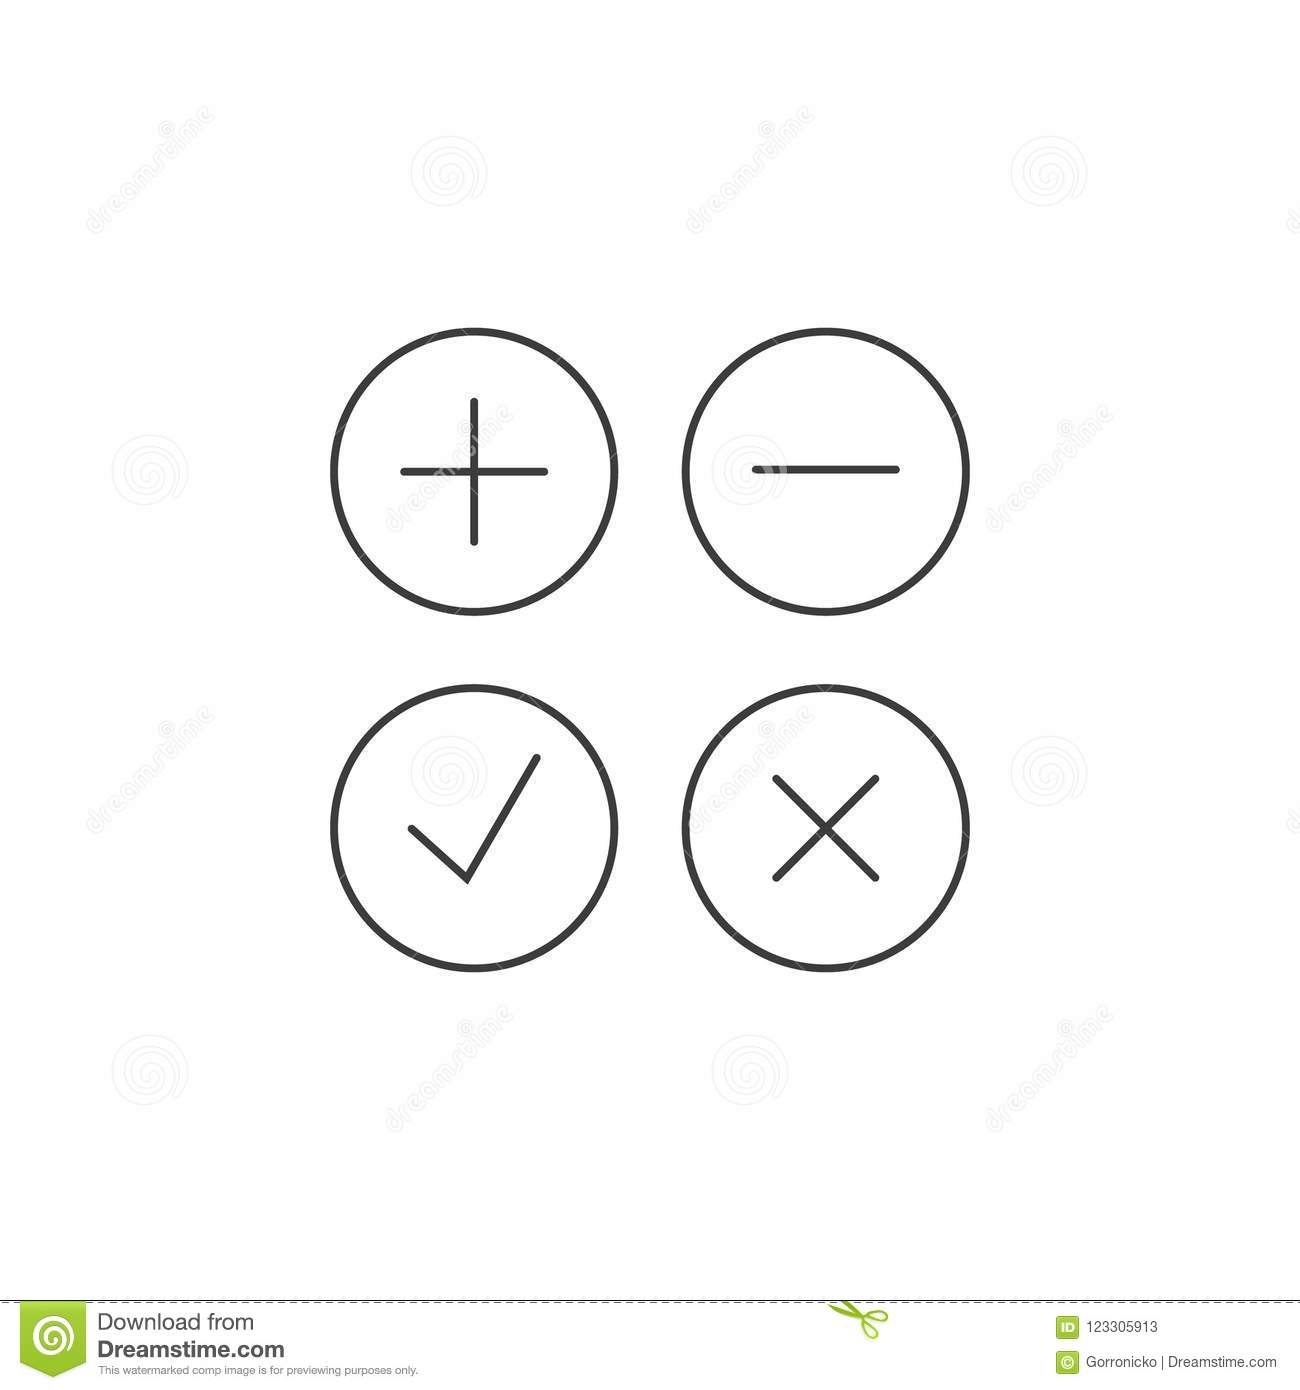 Line art icons for adding and subtracting, accepting and rejecting in a round frame